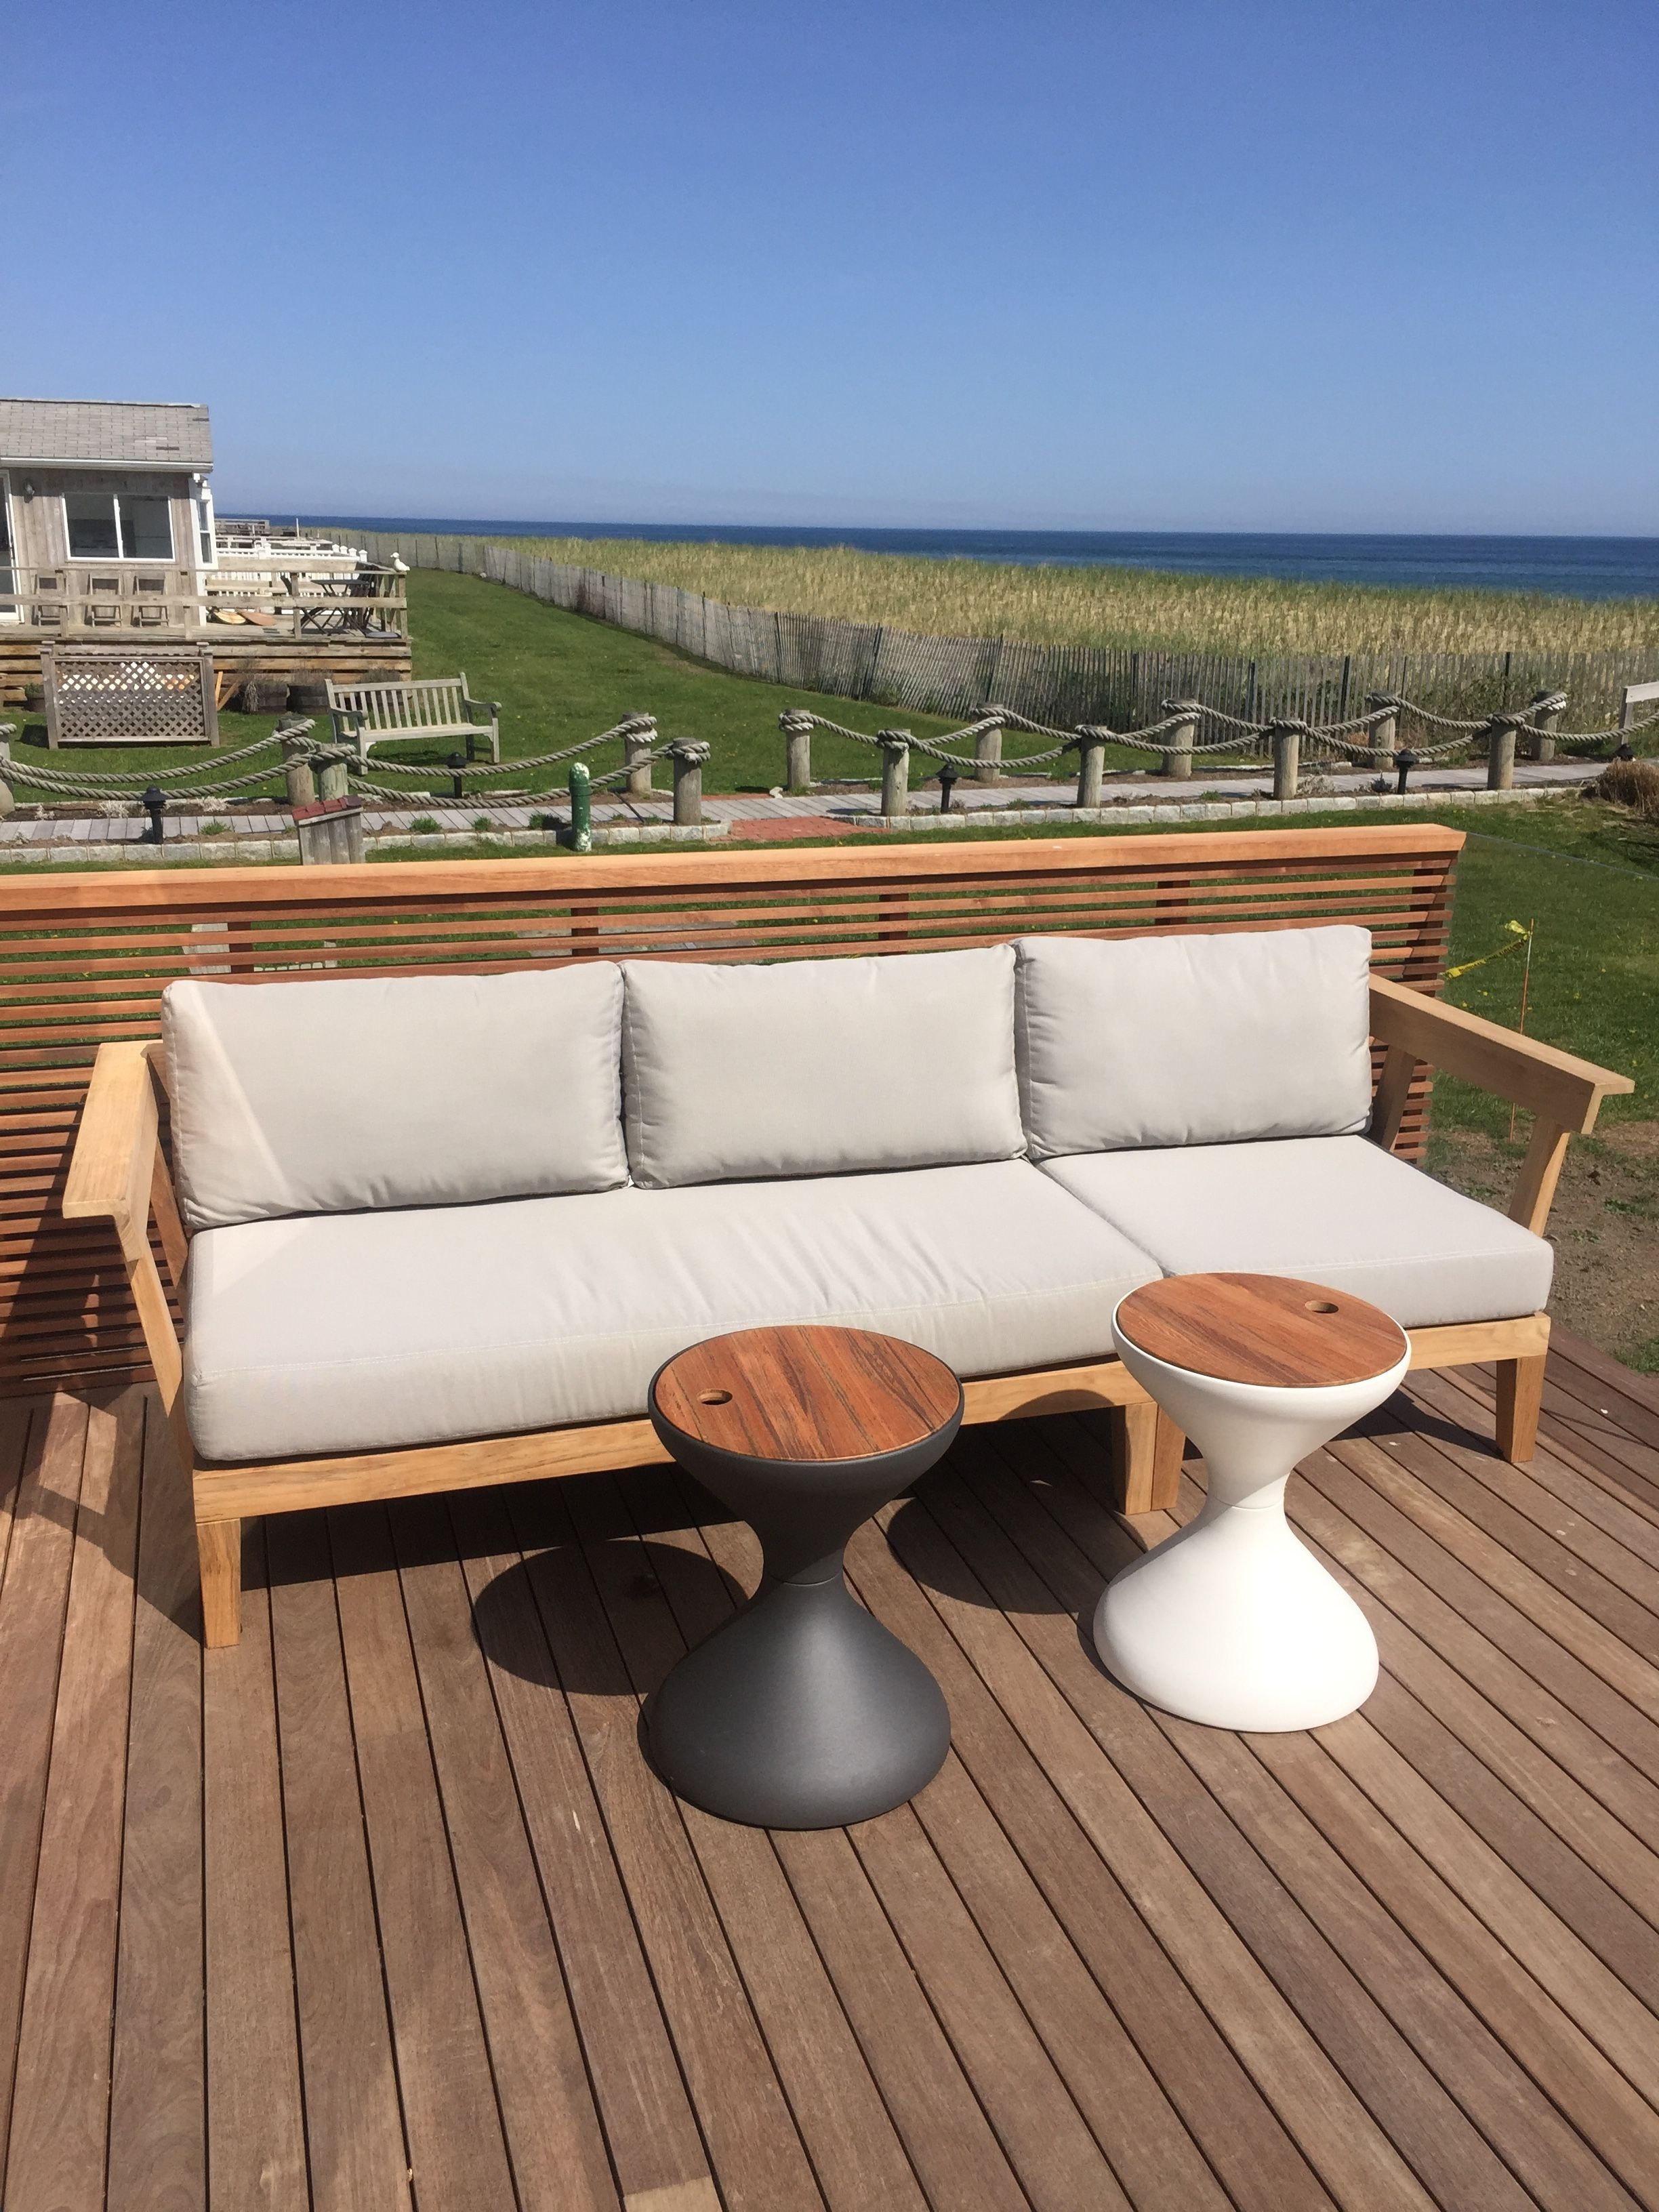 beautiful views from fun beachfront project working outdoor side table with ice bucket erica folding patio umbrellas that provide shade wood top coffee mid century modern dining